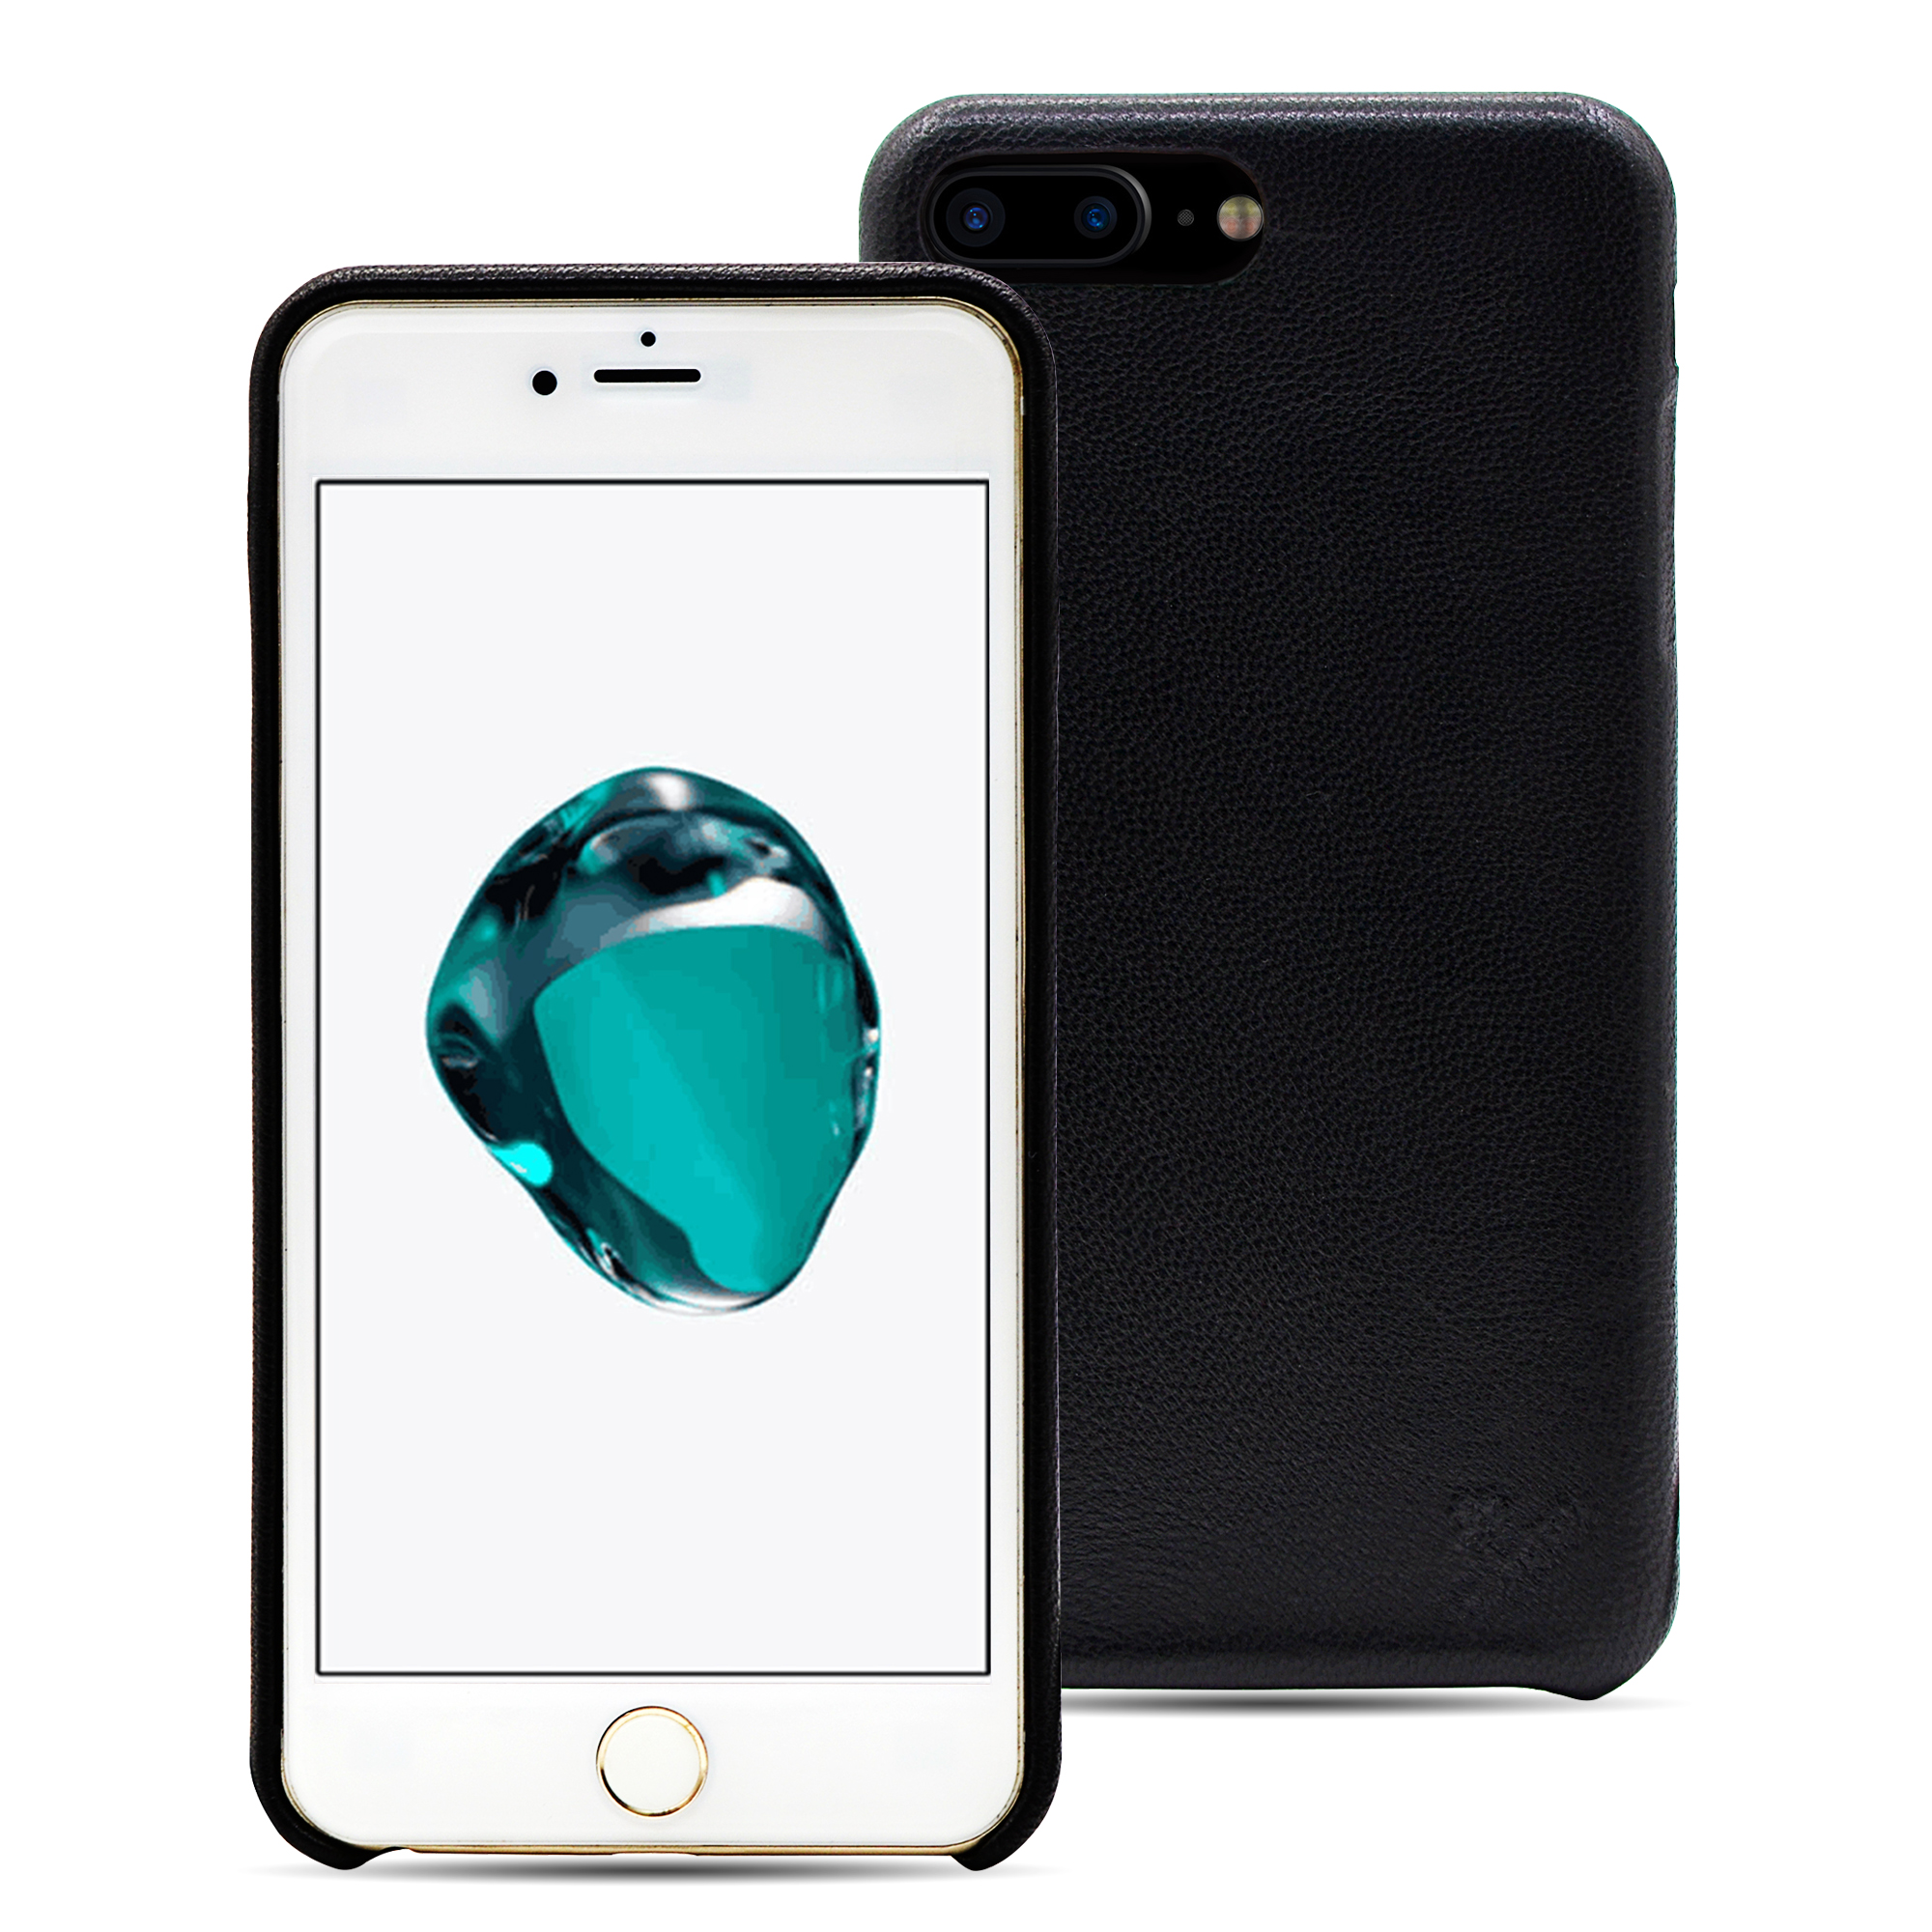 manna iphone 8 plus cases and covers